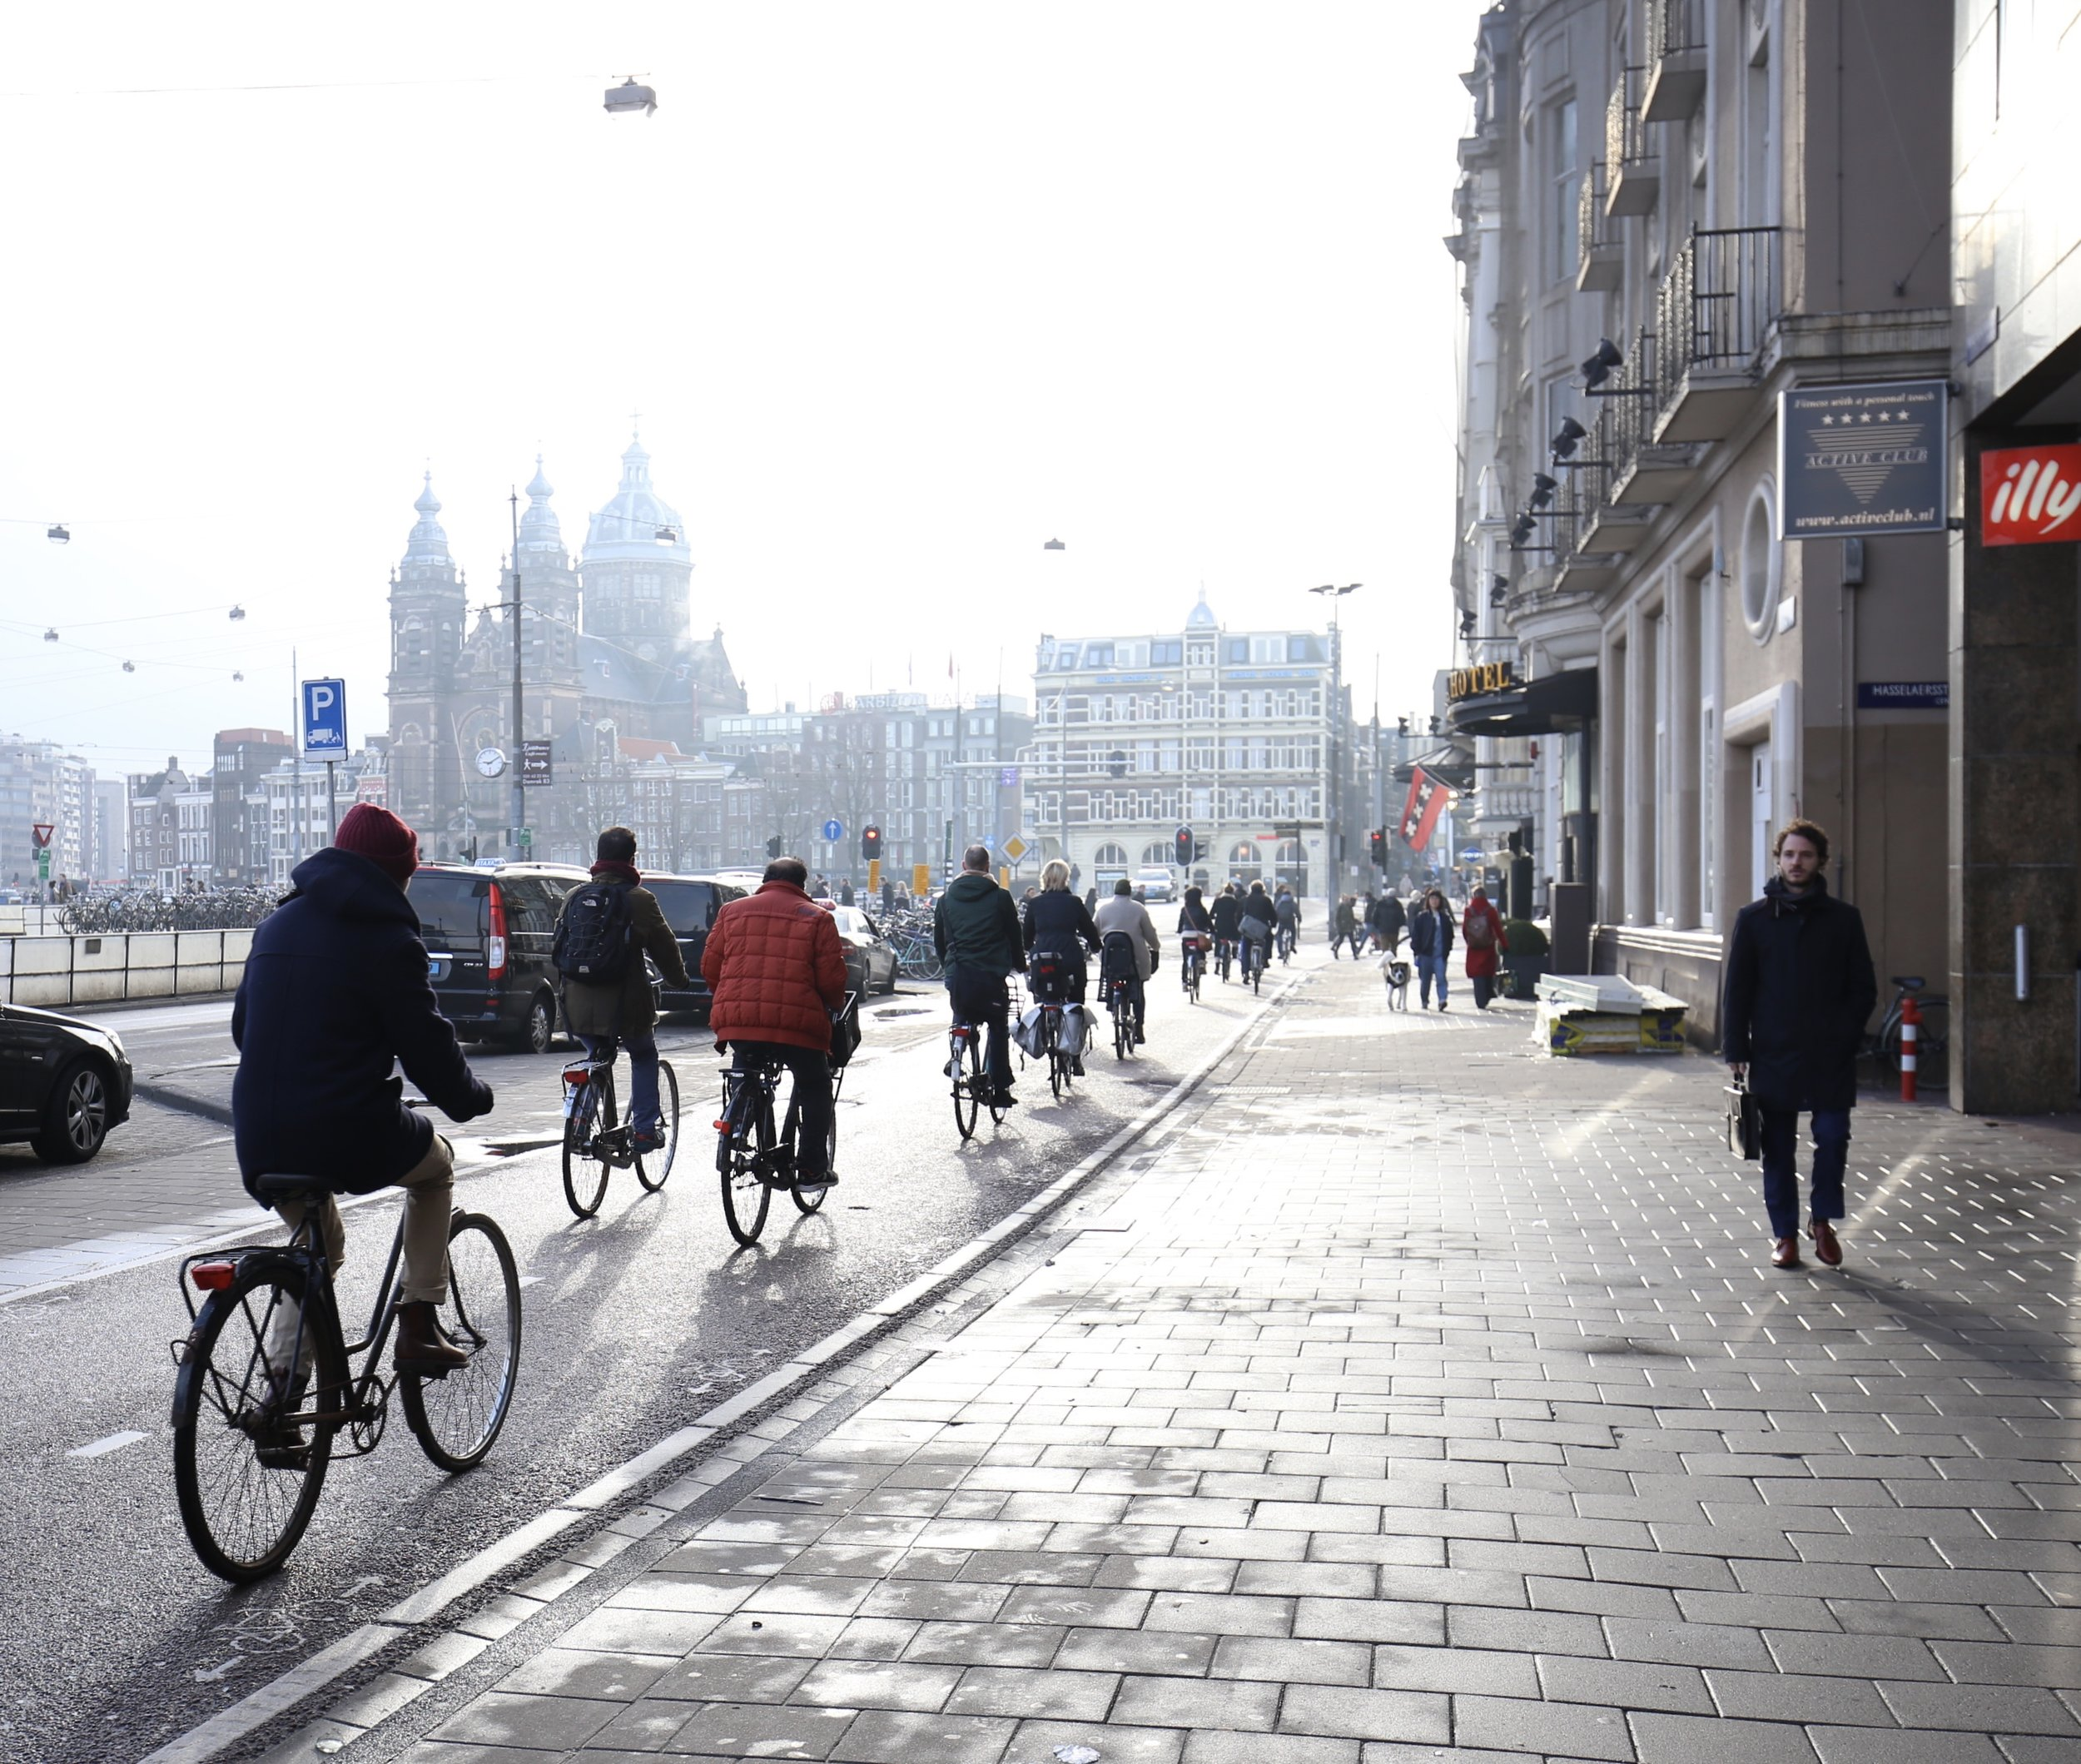 Bikers in long lines on the bike paths of Amsterdam.